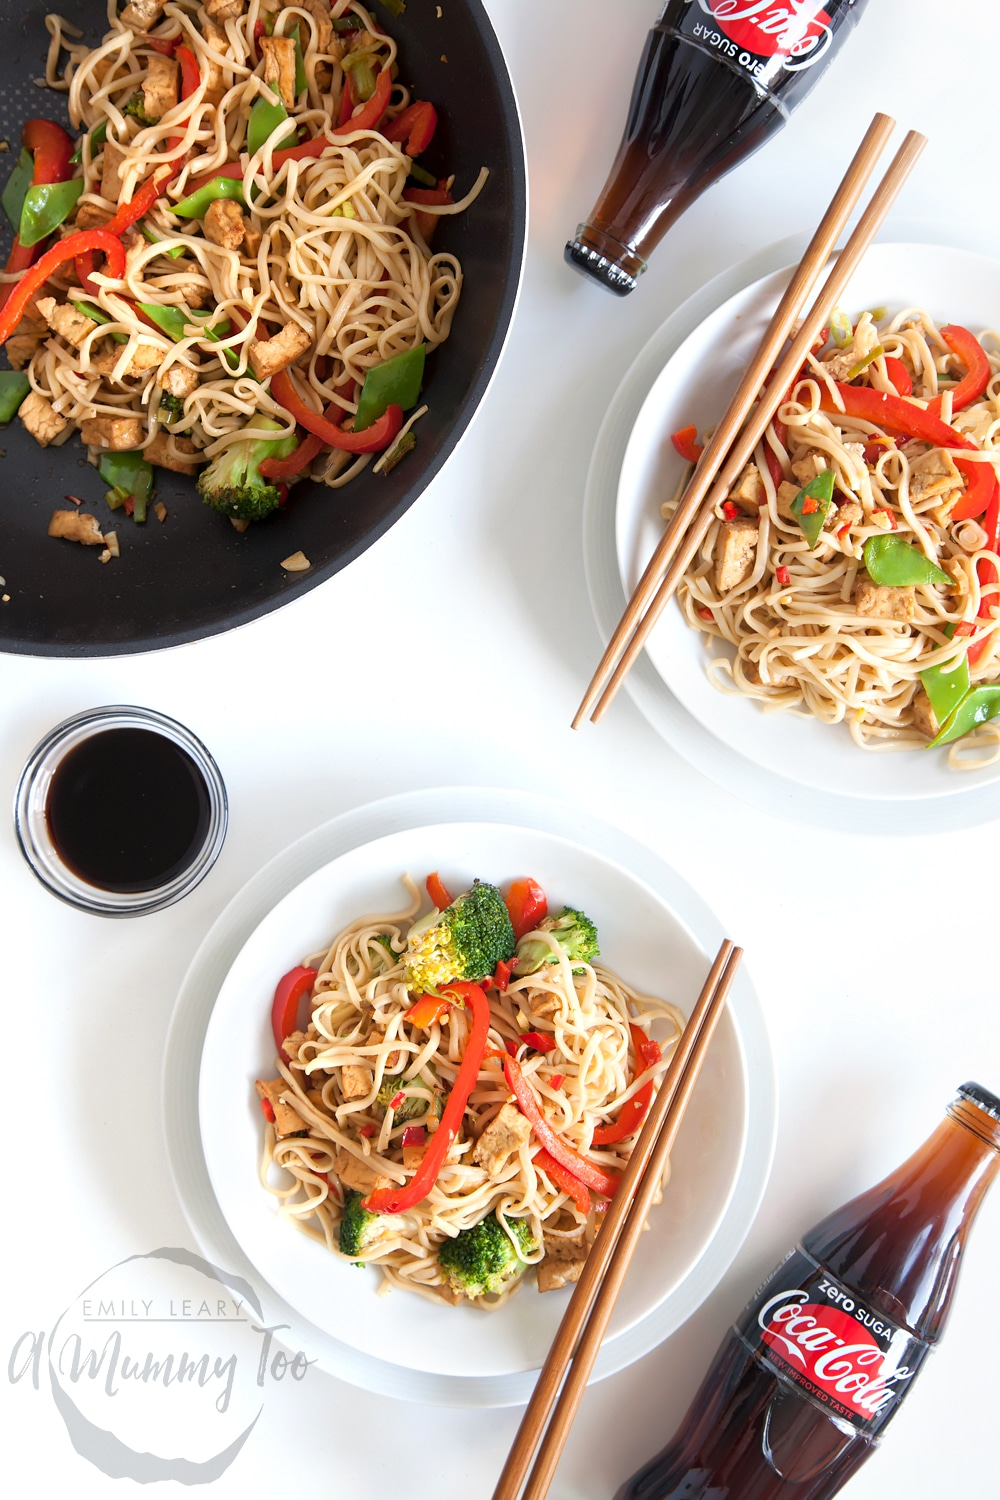 Serve your Coca-Cola Zero Sugar tofu and vegetable noodle stir fry with cold Coca-Cola Zero Sugar and enjoy!